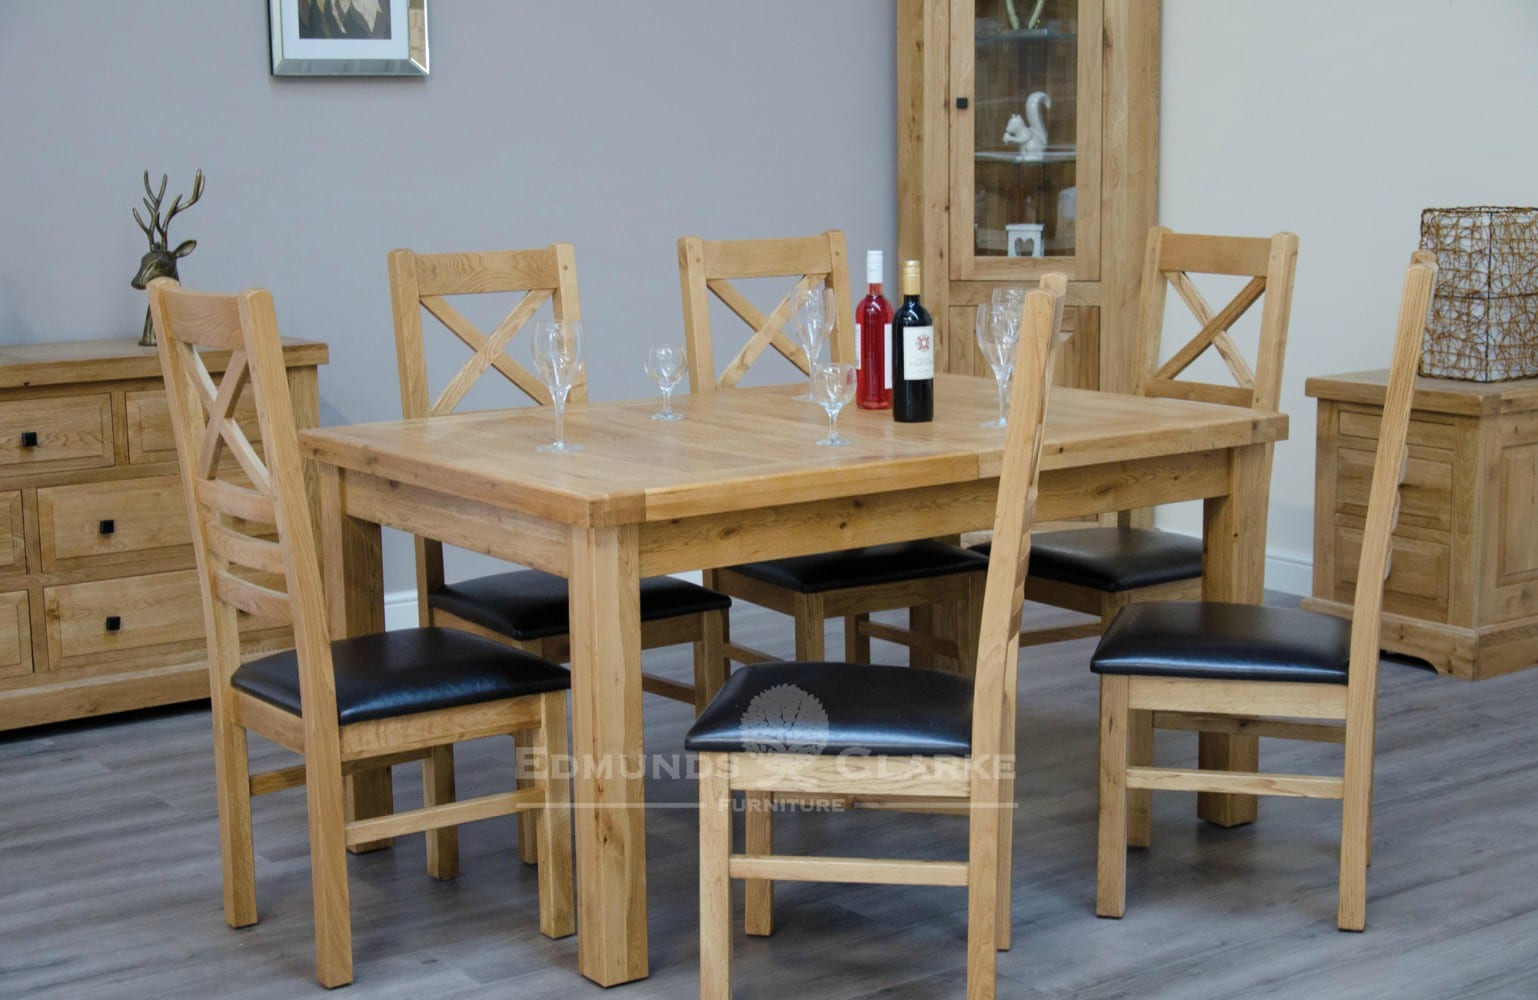 Melford Solid Oak 150cm Extending Dining Table, chunky, two leaves that store underneath will sit 4 to 8 people comfortably DLX1500EXT